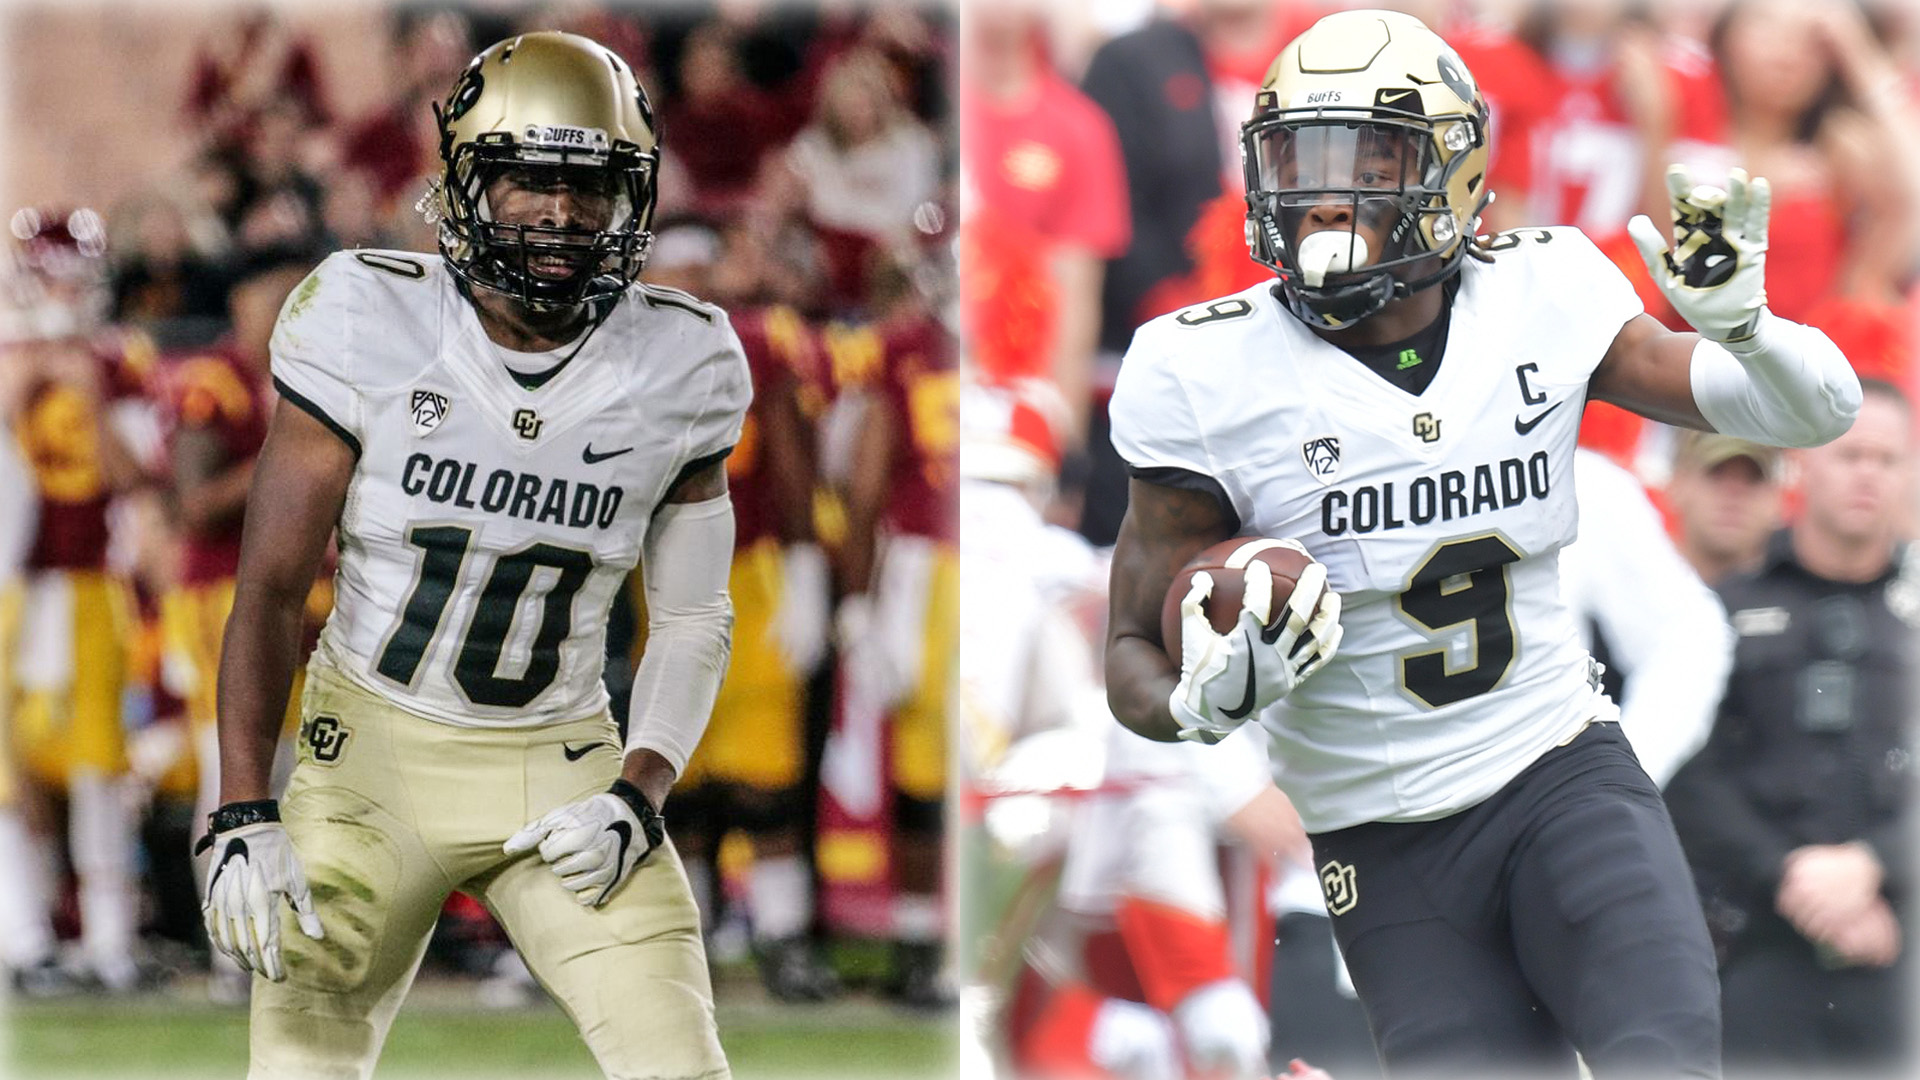 Return Of Jackson Possible Winfree Return Could Bolster Buffs